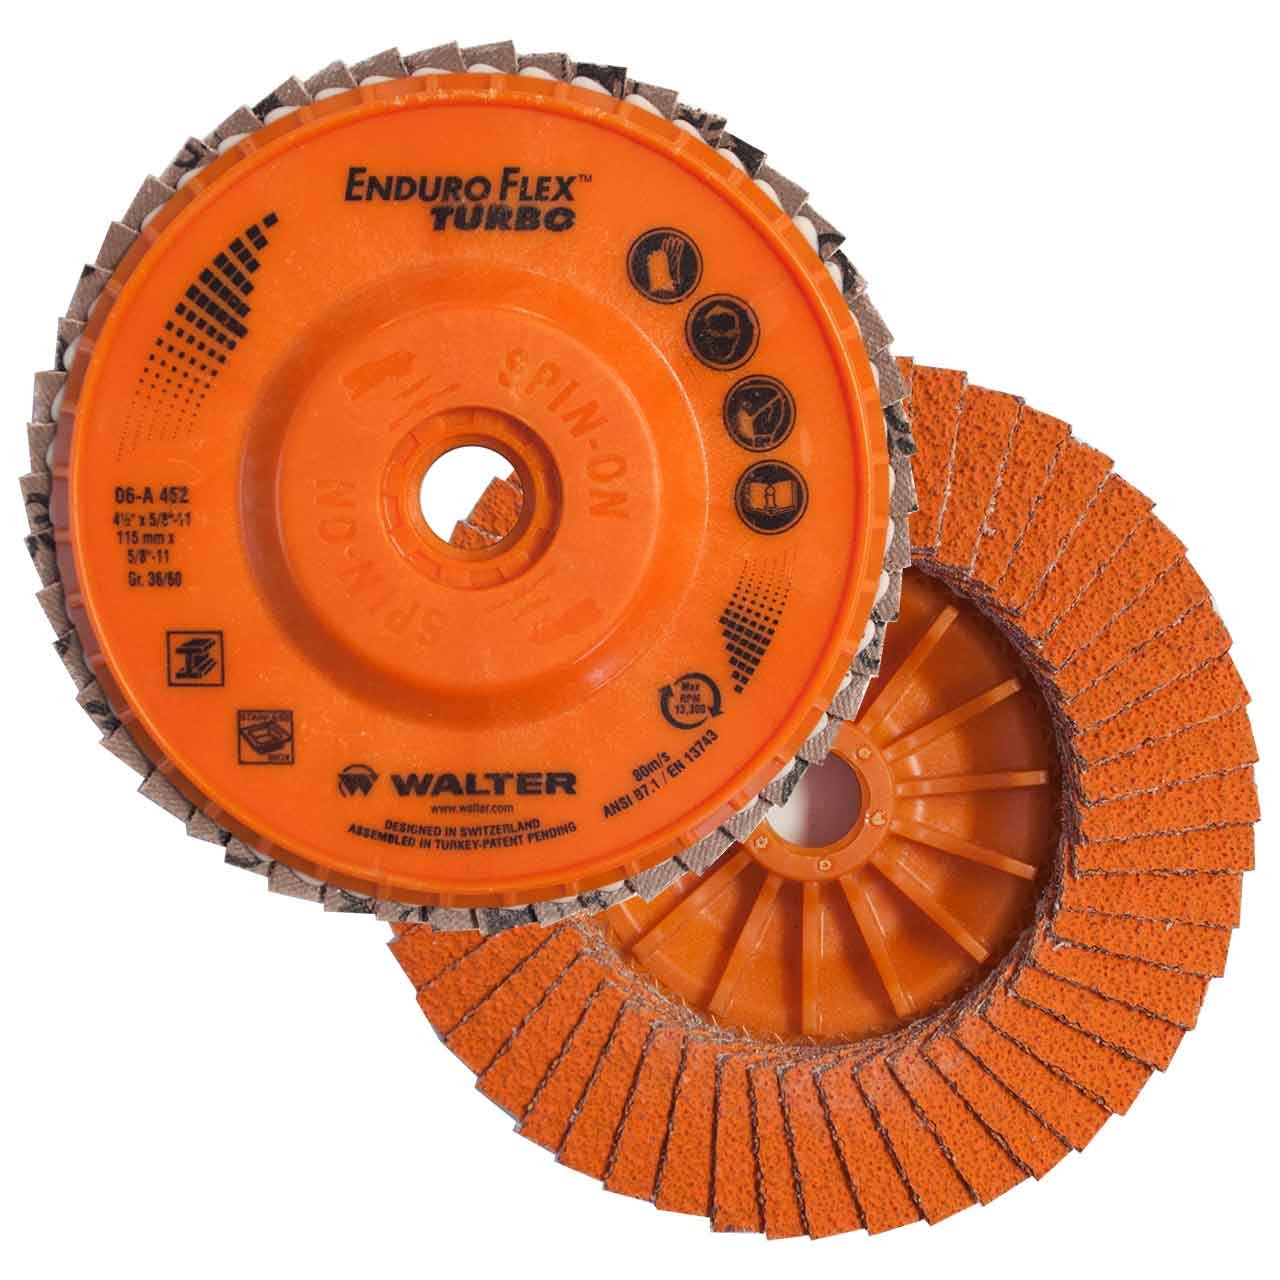 Walter 06A502 5x5/8-11 Enduro-Flex Turbo Blending Disc, 10 pack by Walter